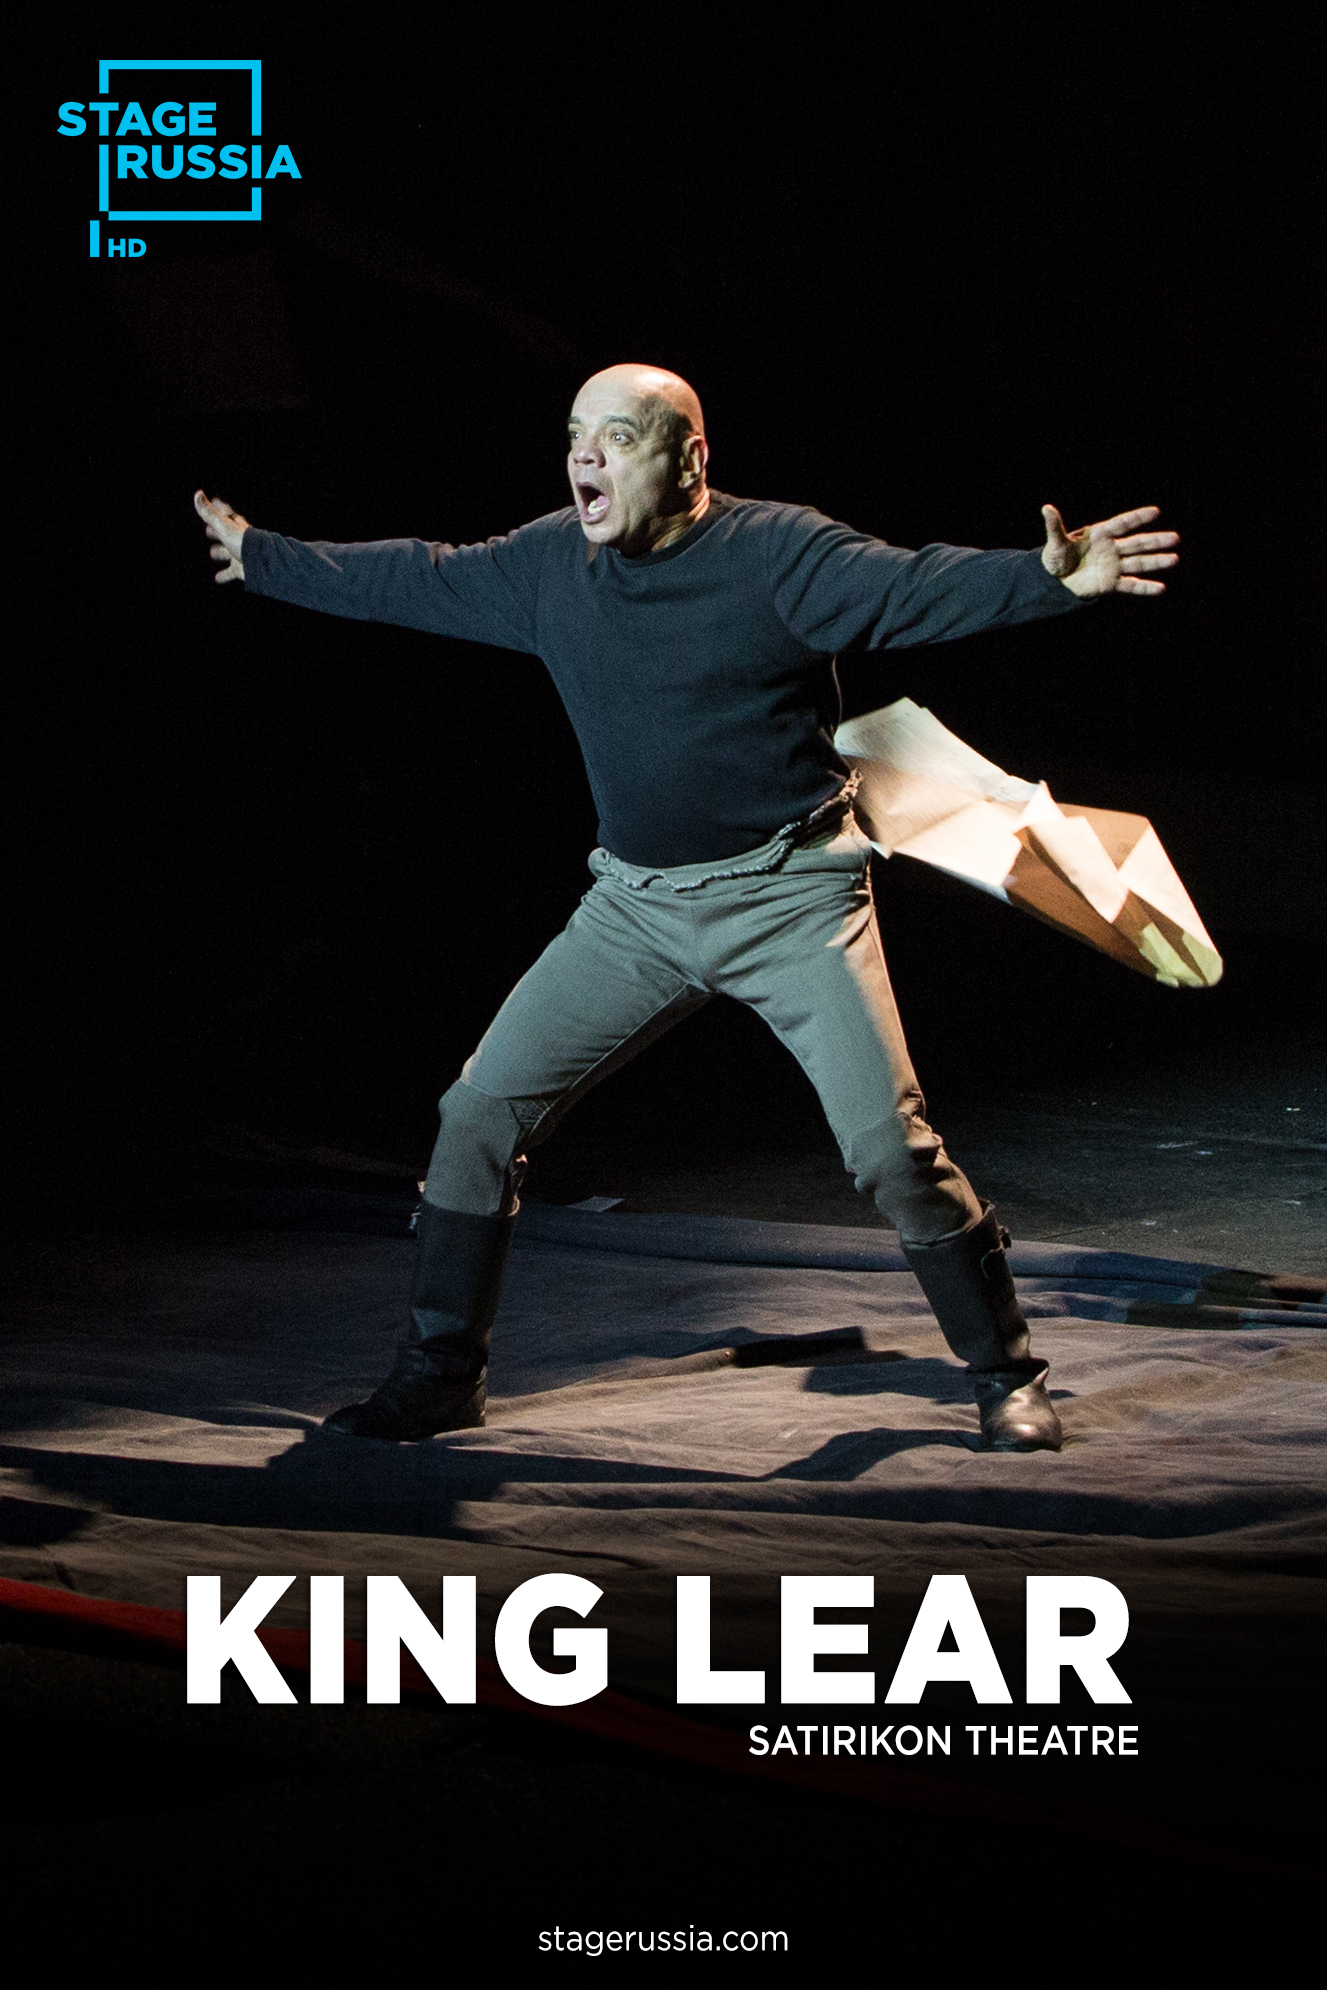 Poster for Stage Russia: King Lear